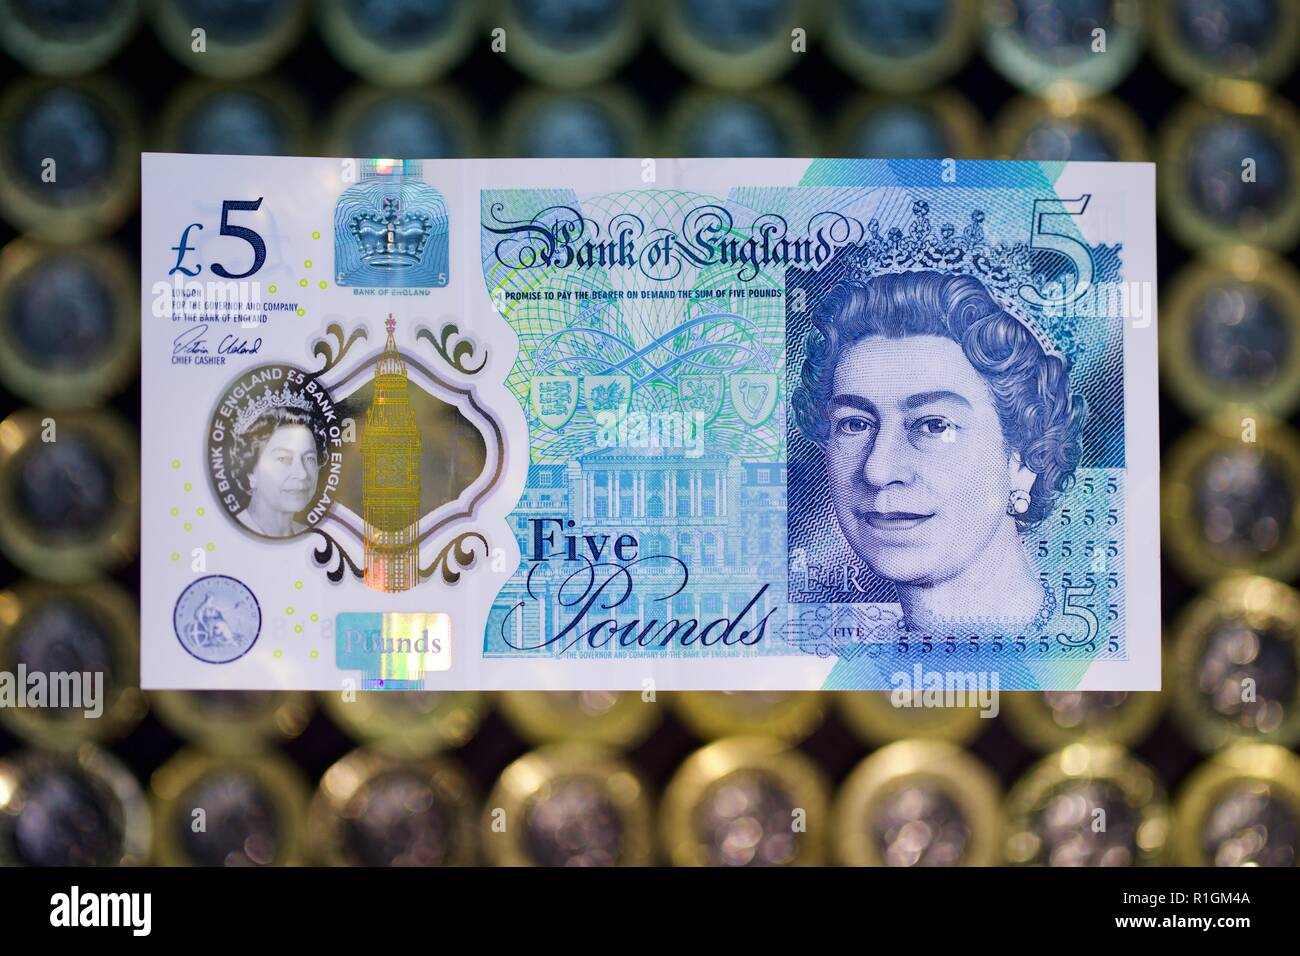 The Bank of England £5 note - Stock Image